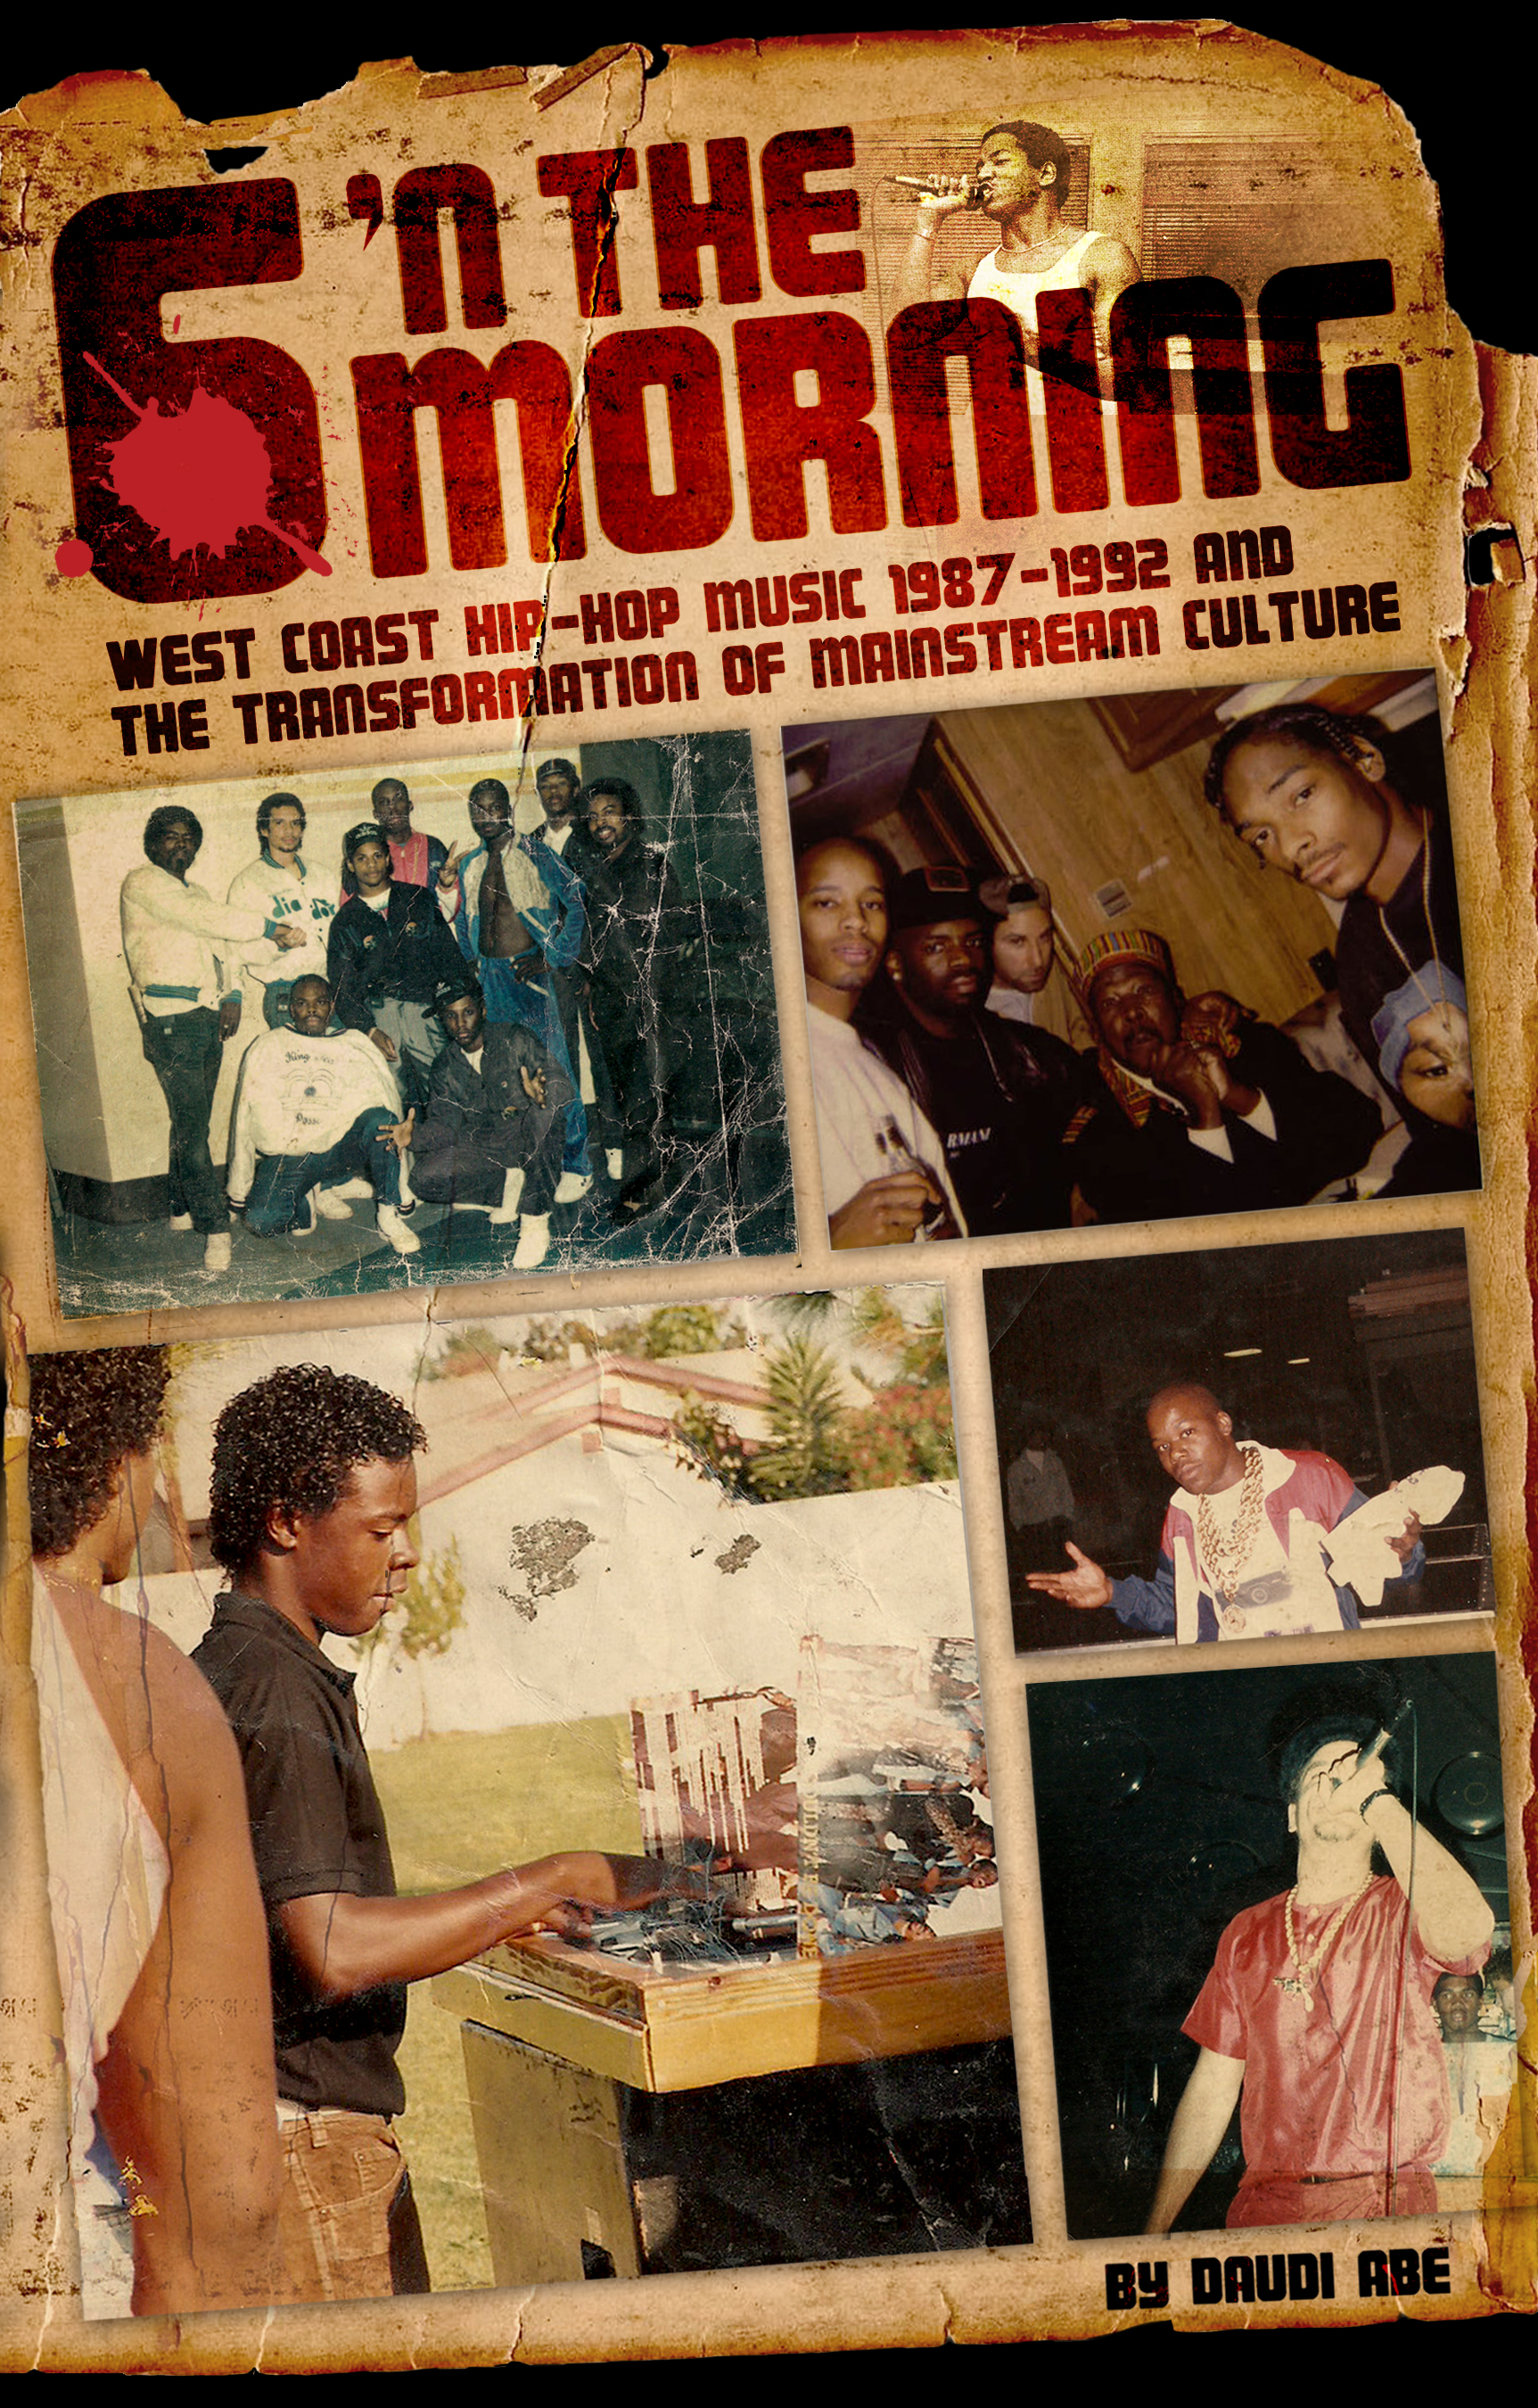 6 N The Morning:  West Coast Hip-Hop Music 1987-1992 &#038; the Transformation of Mainstream Culture